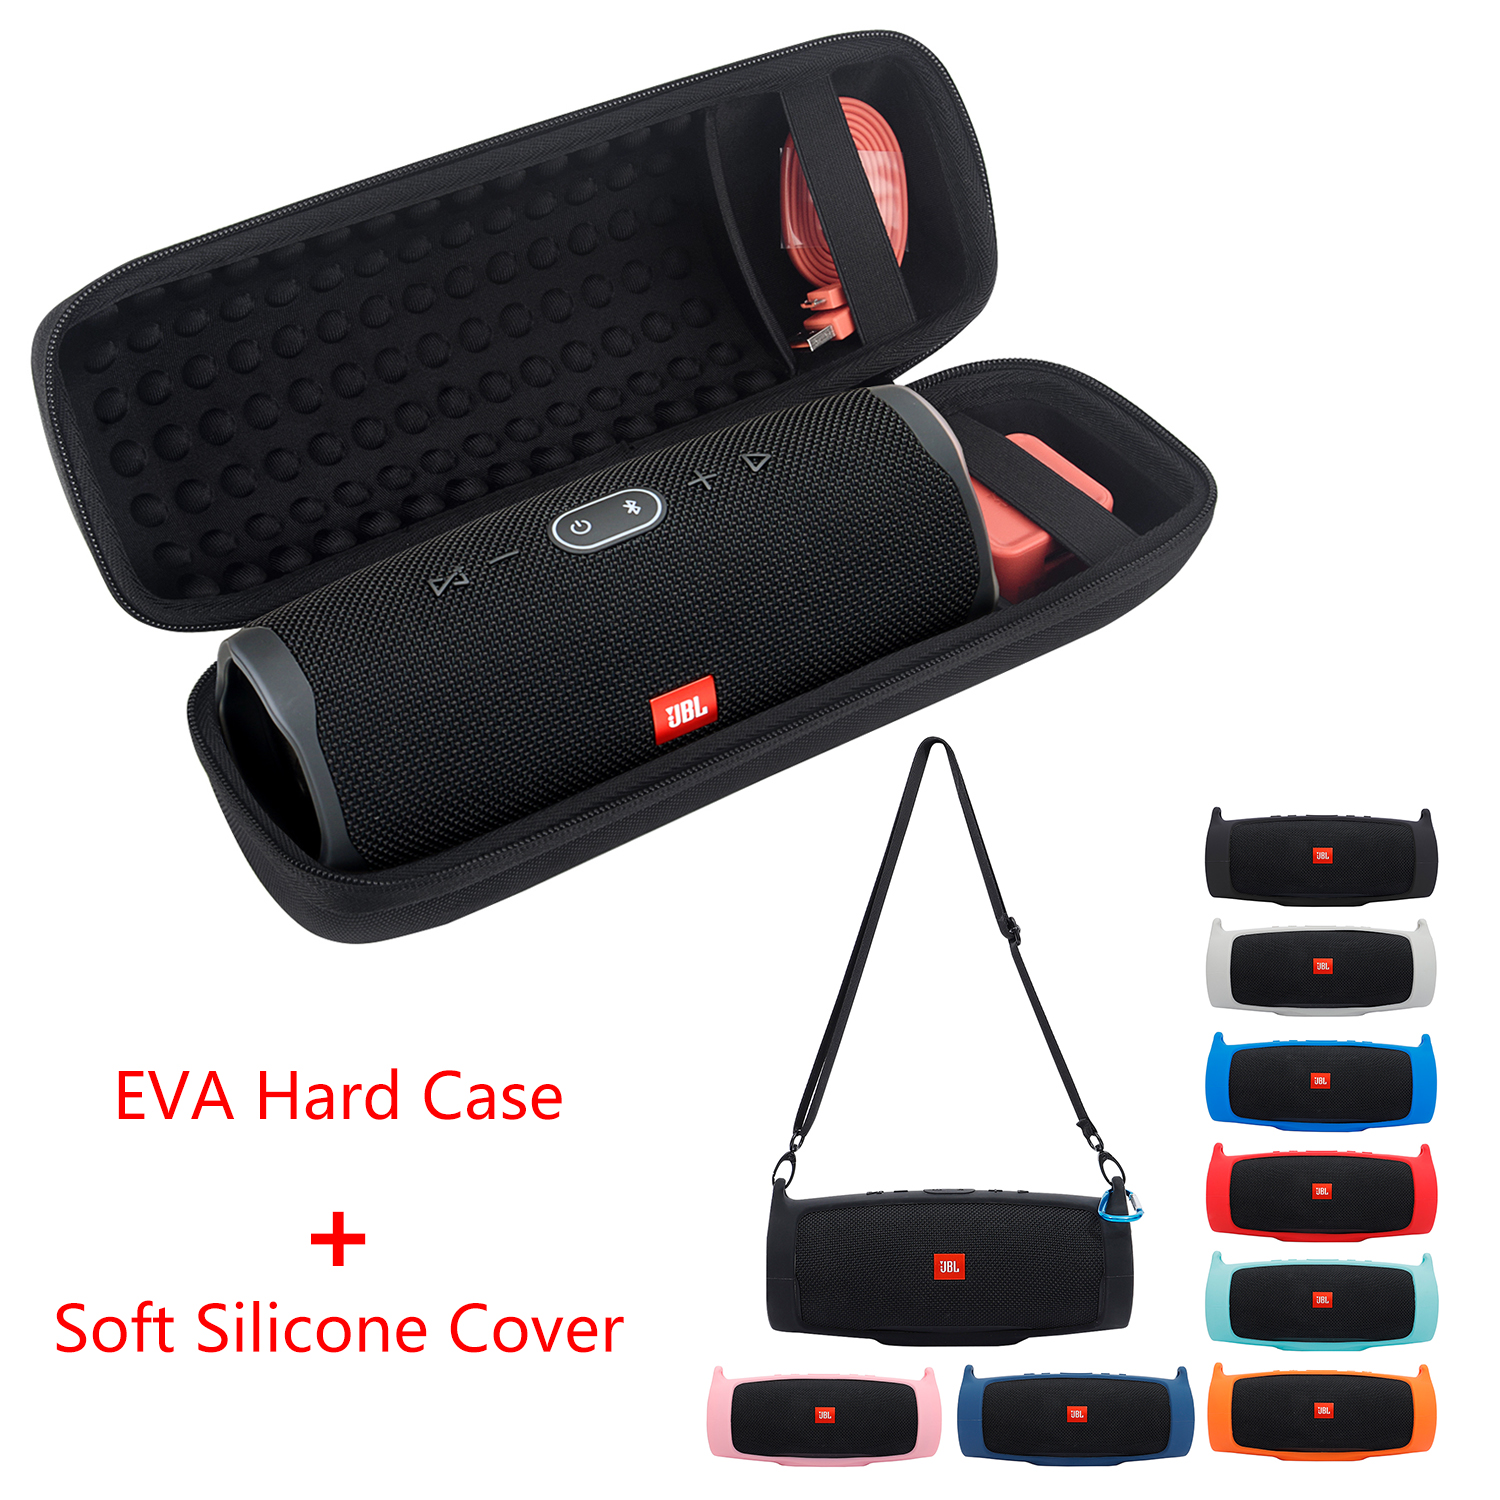 2020 Newest EVA Hard Case Travel Carrying Zipper Storage Bag   Soft Silicone Case Cover for JBL Charge 4 Bluetooth Speaker